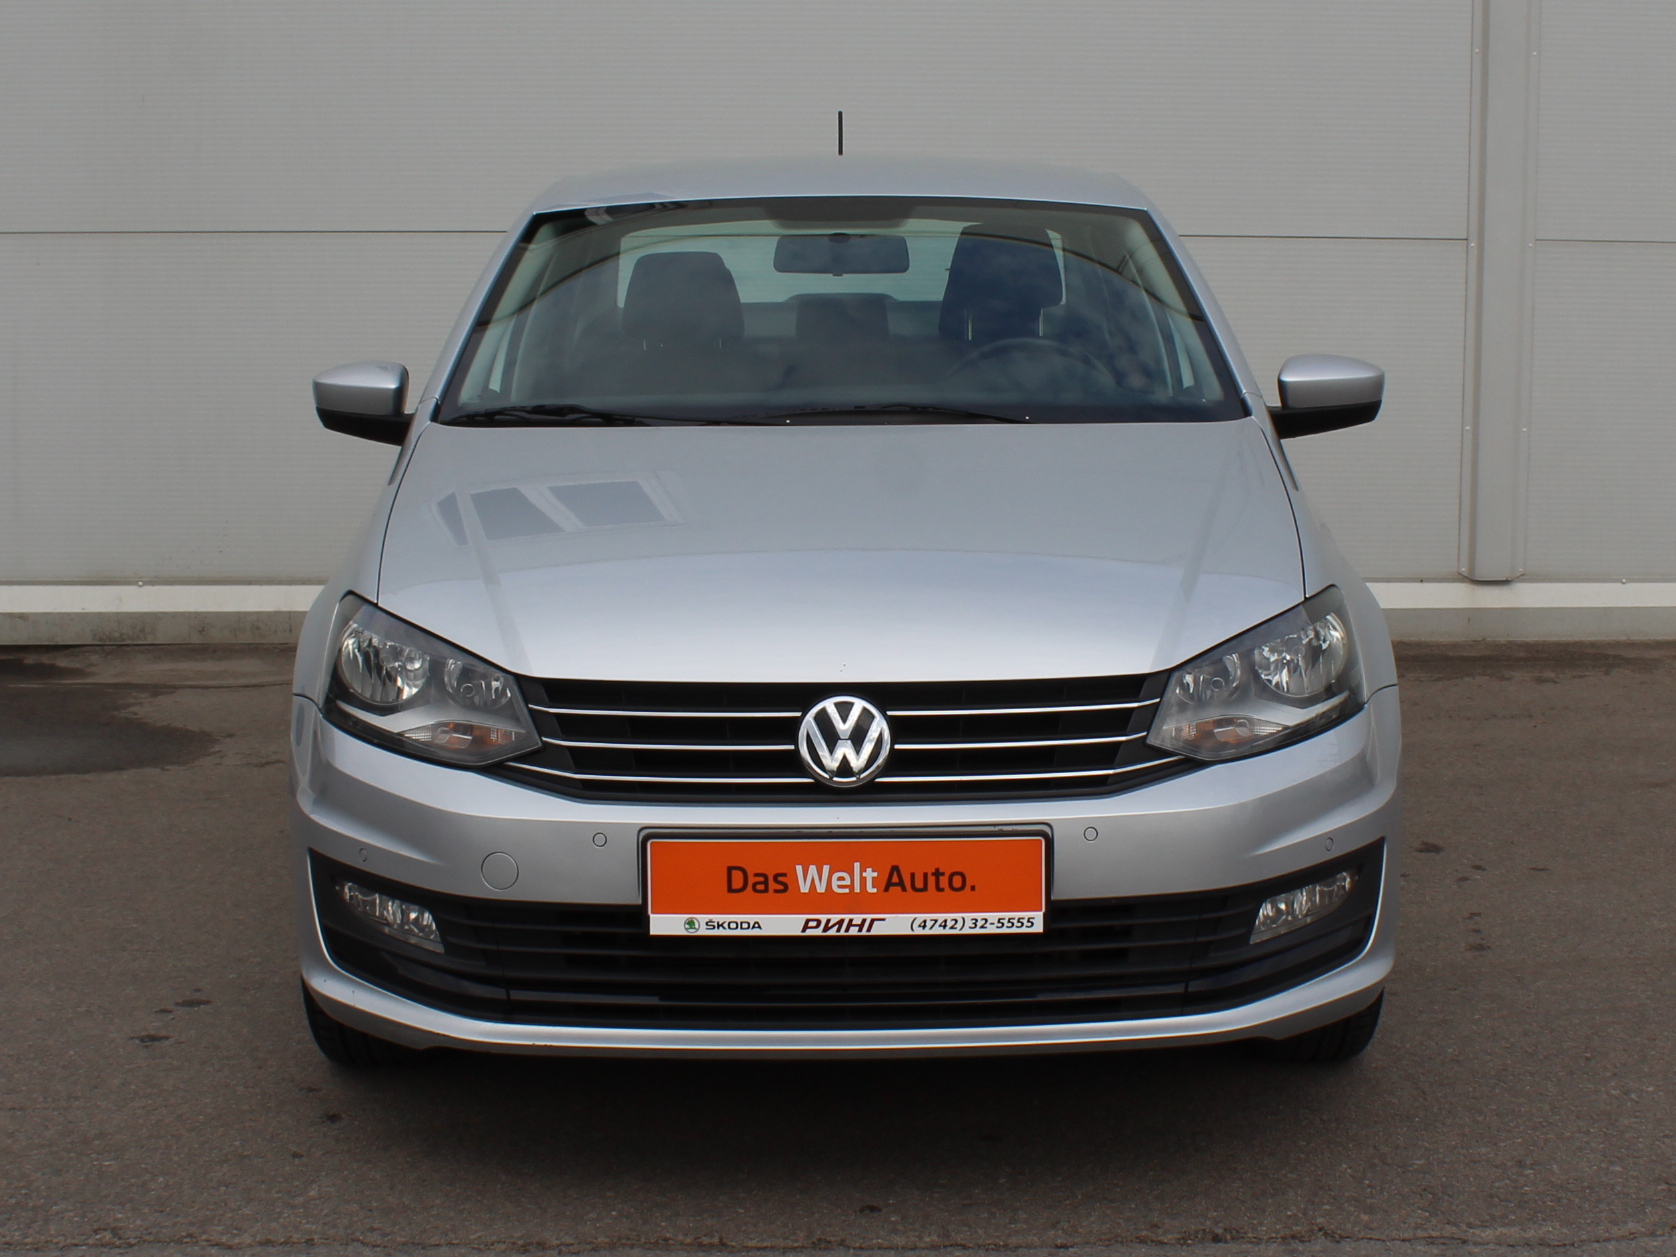 Volkswagen Polo Седан (2016г.)